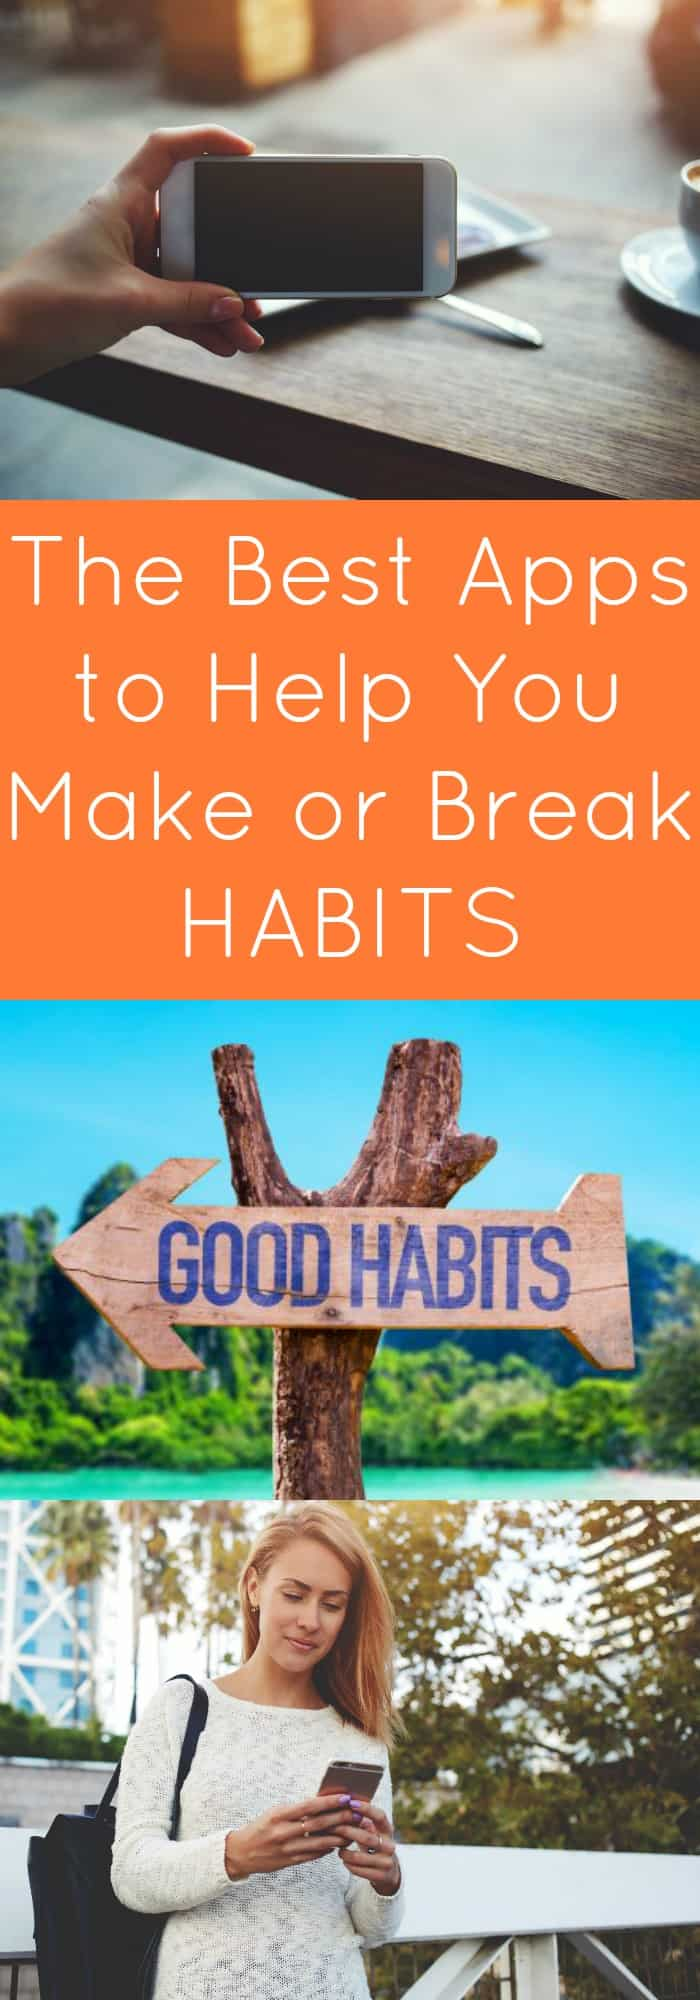 The Best Apps to Help You Make or Break Habits